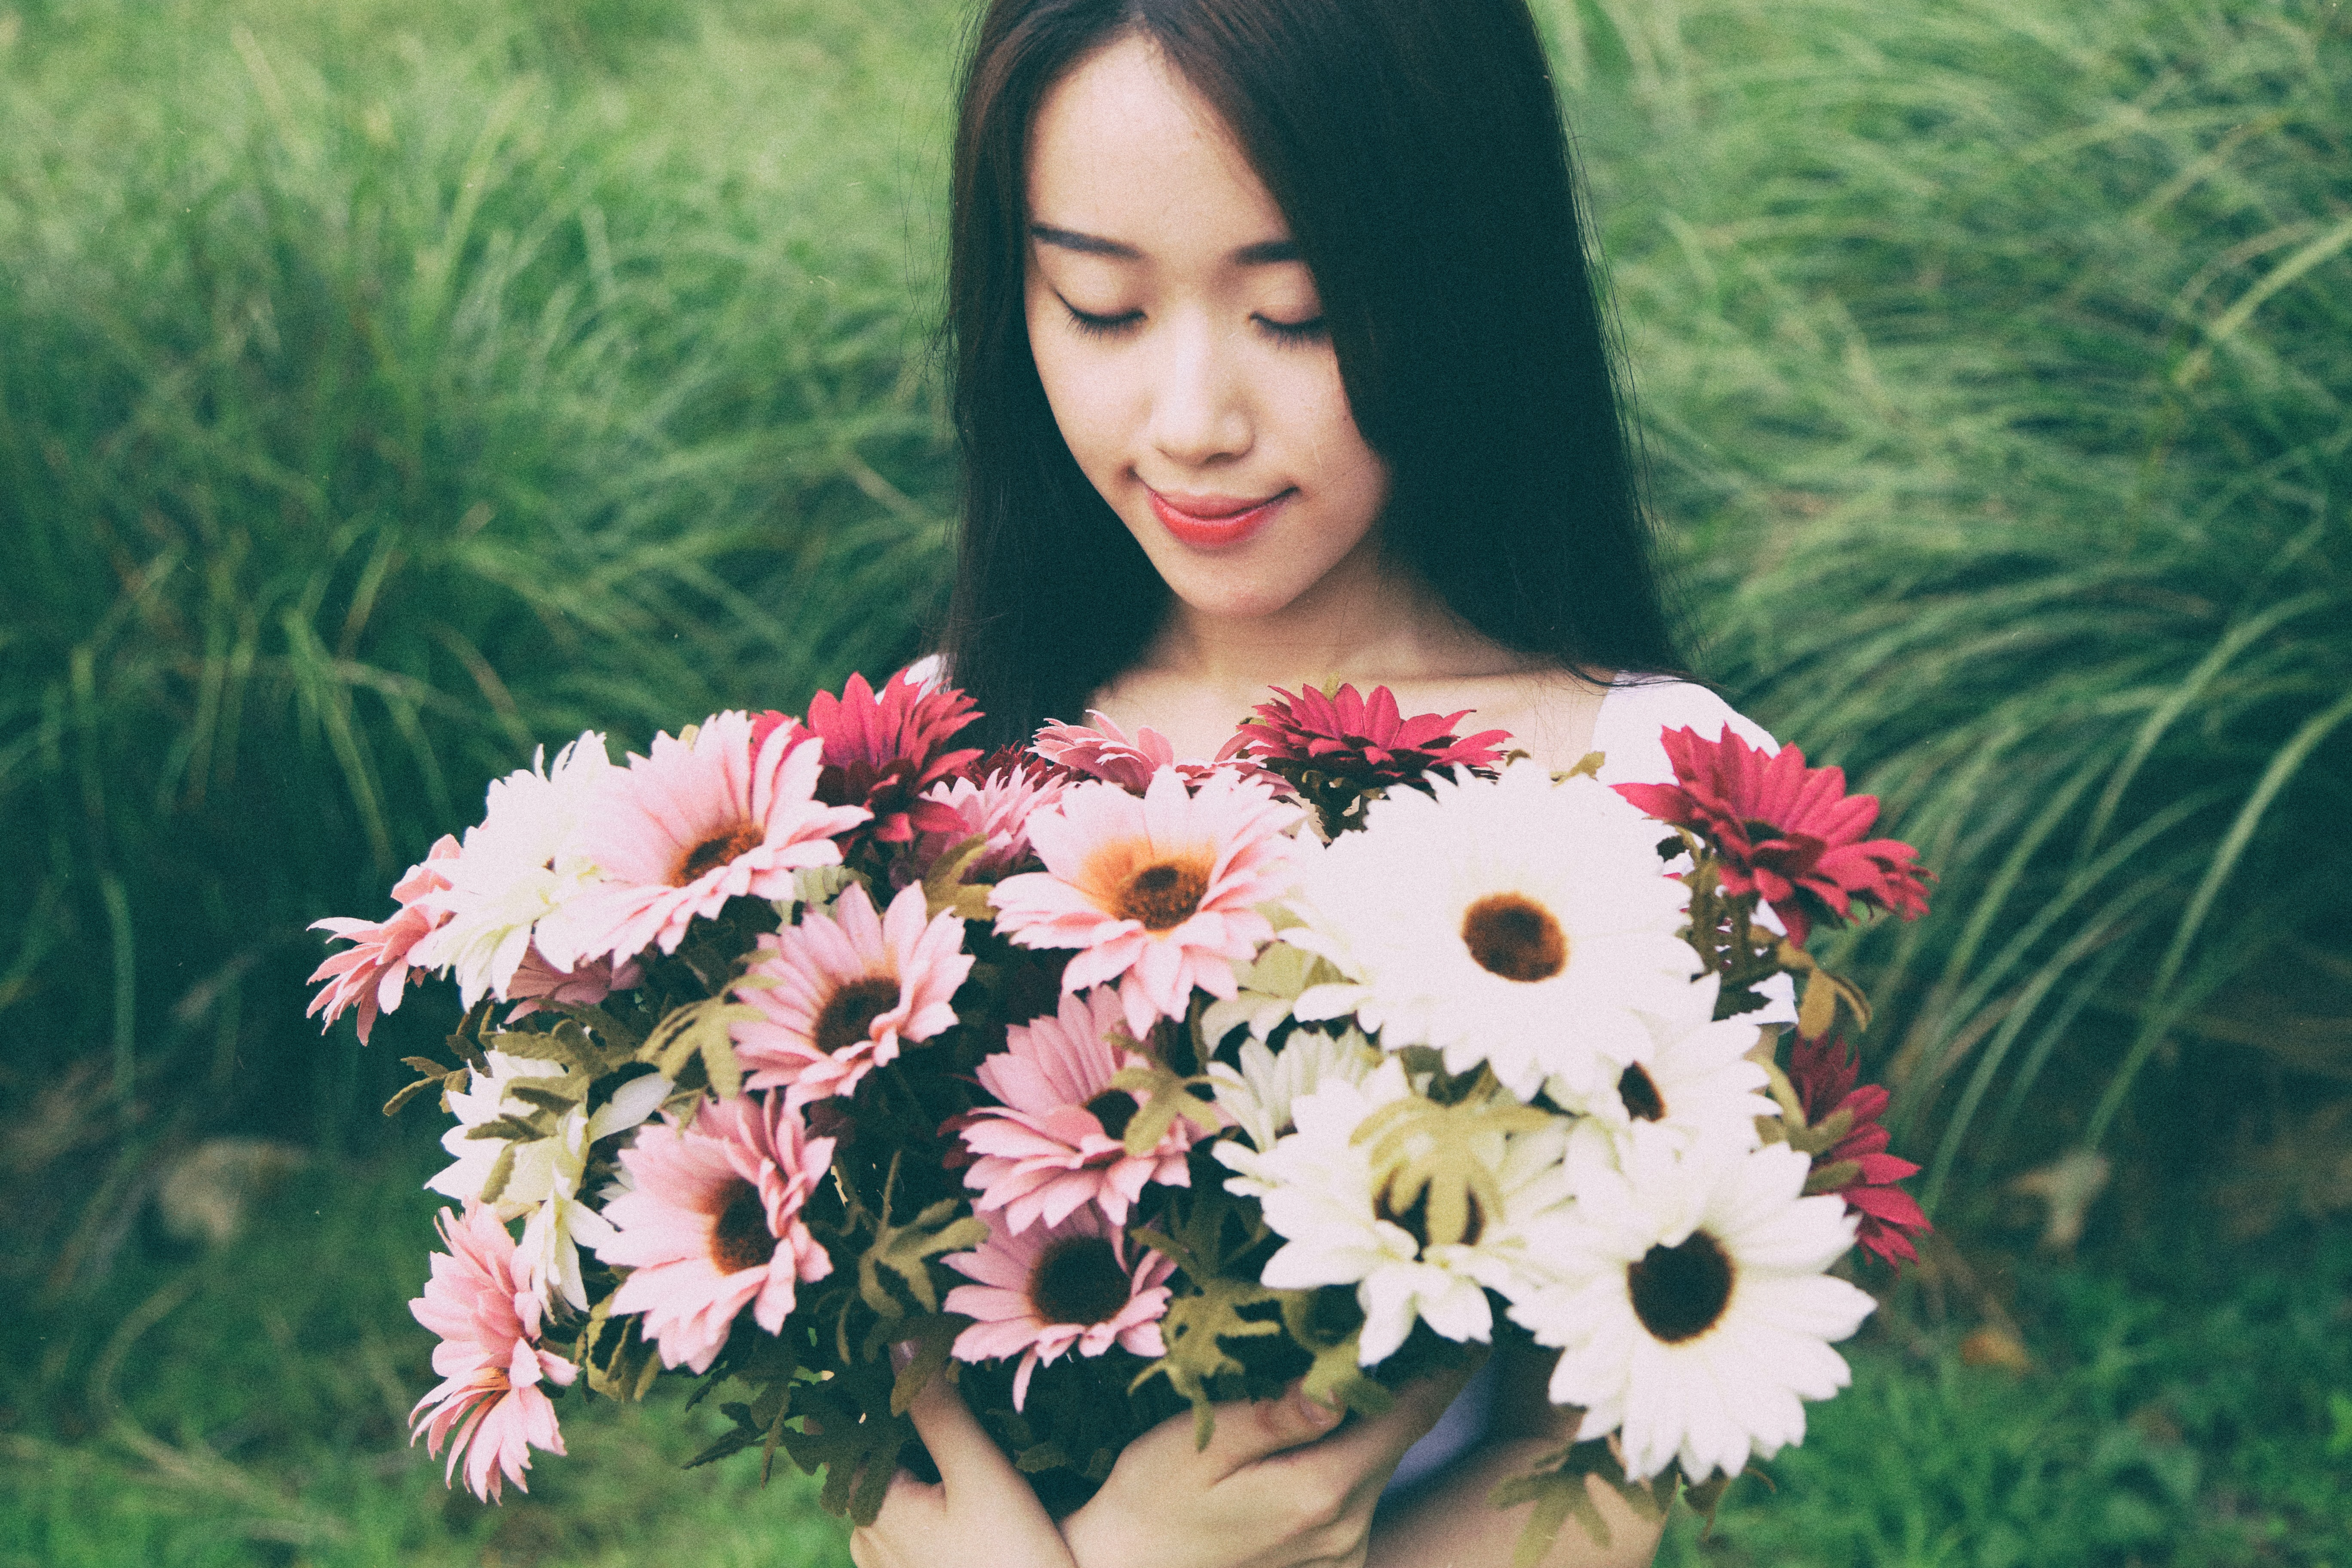 A dark-haired woman holding a large bouquet of pink and white flowers in a meadow